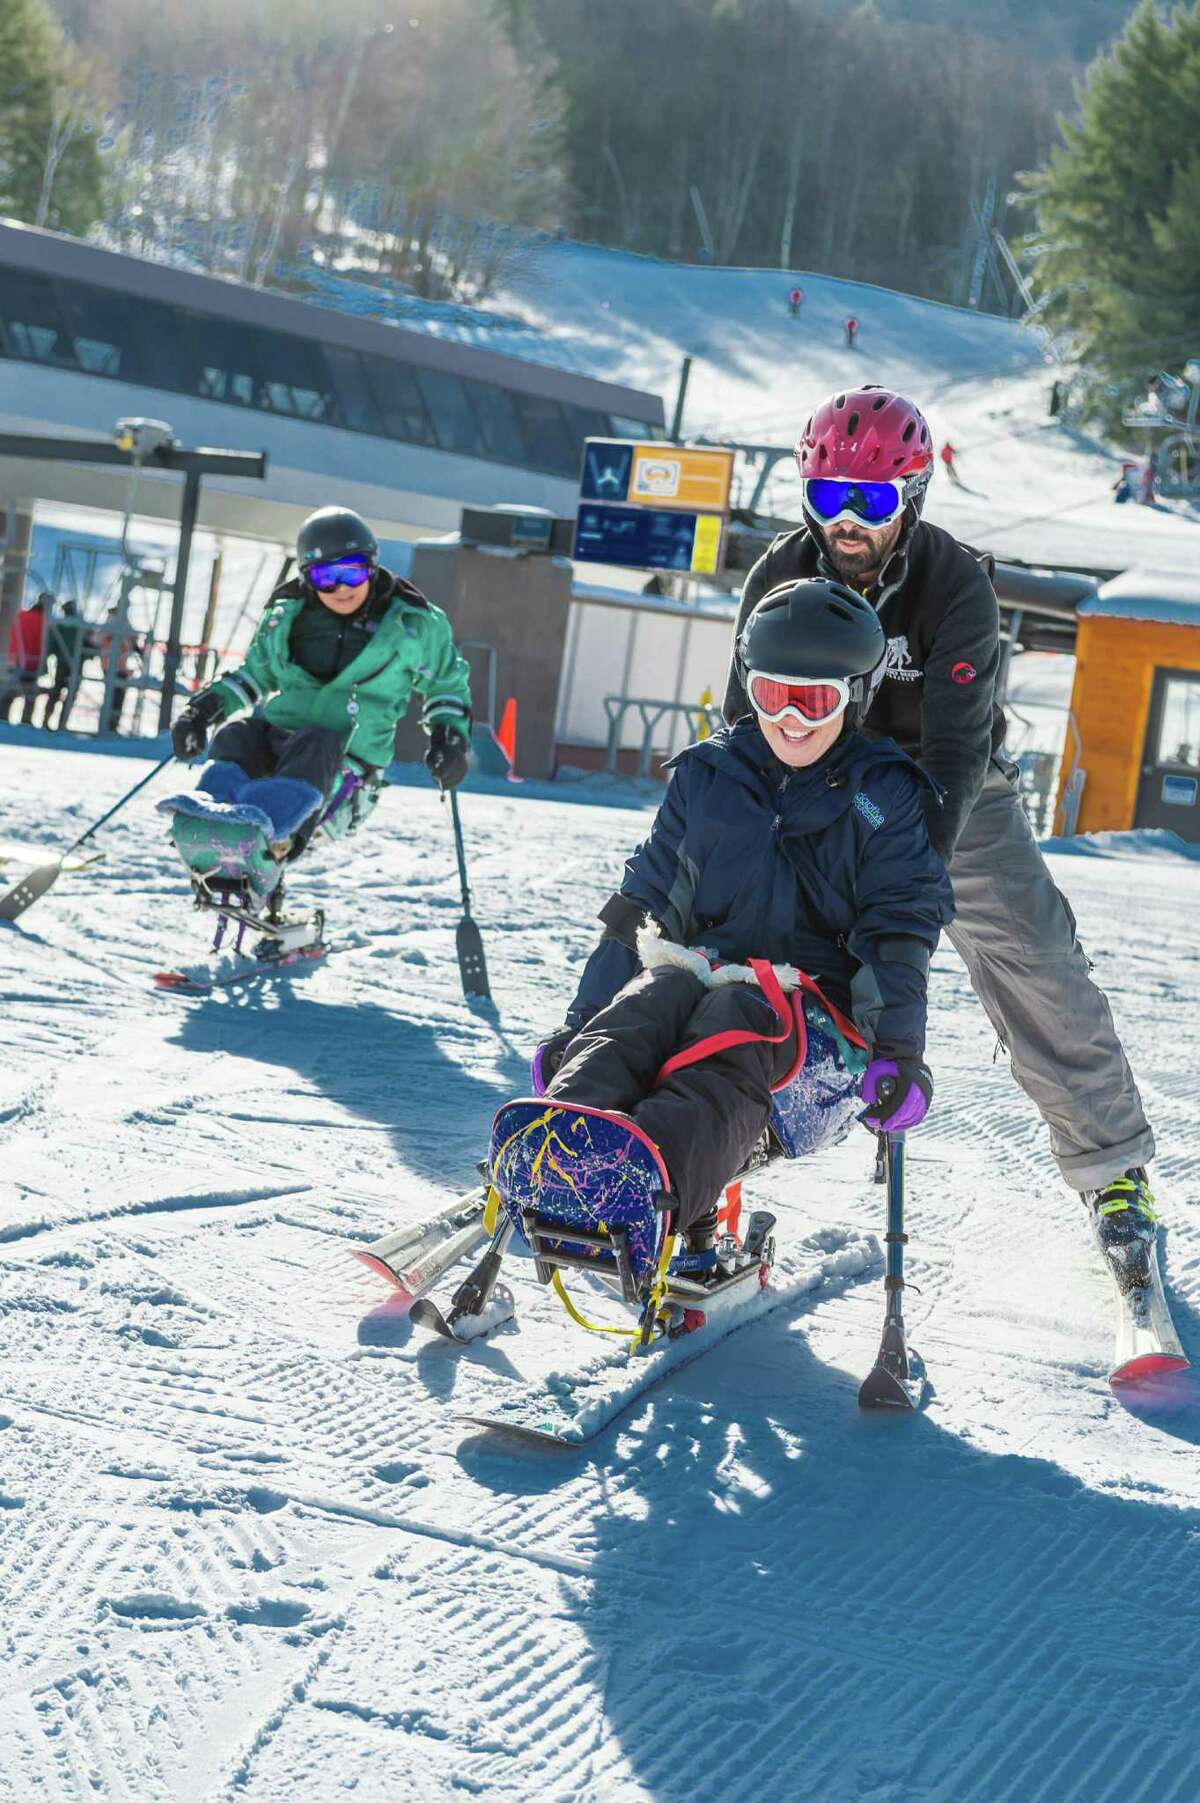 Adaptive Sports Foundation presented its Wounded Warriors Weekend at Windham Mountain on Friday Jan. 8, 2016. Seen here are Rachel Fredericks, Wounded Warrior of Troy and volunteer instructors I Tai Lu and Kevin Gray. (Photo by March Bryan-Brown Photography)